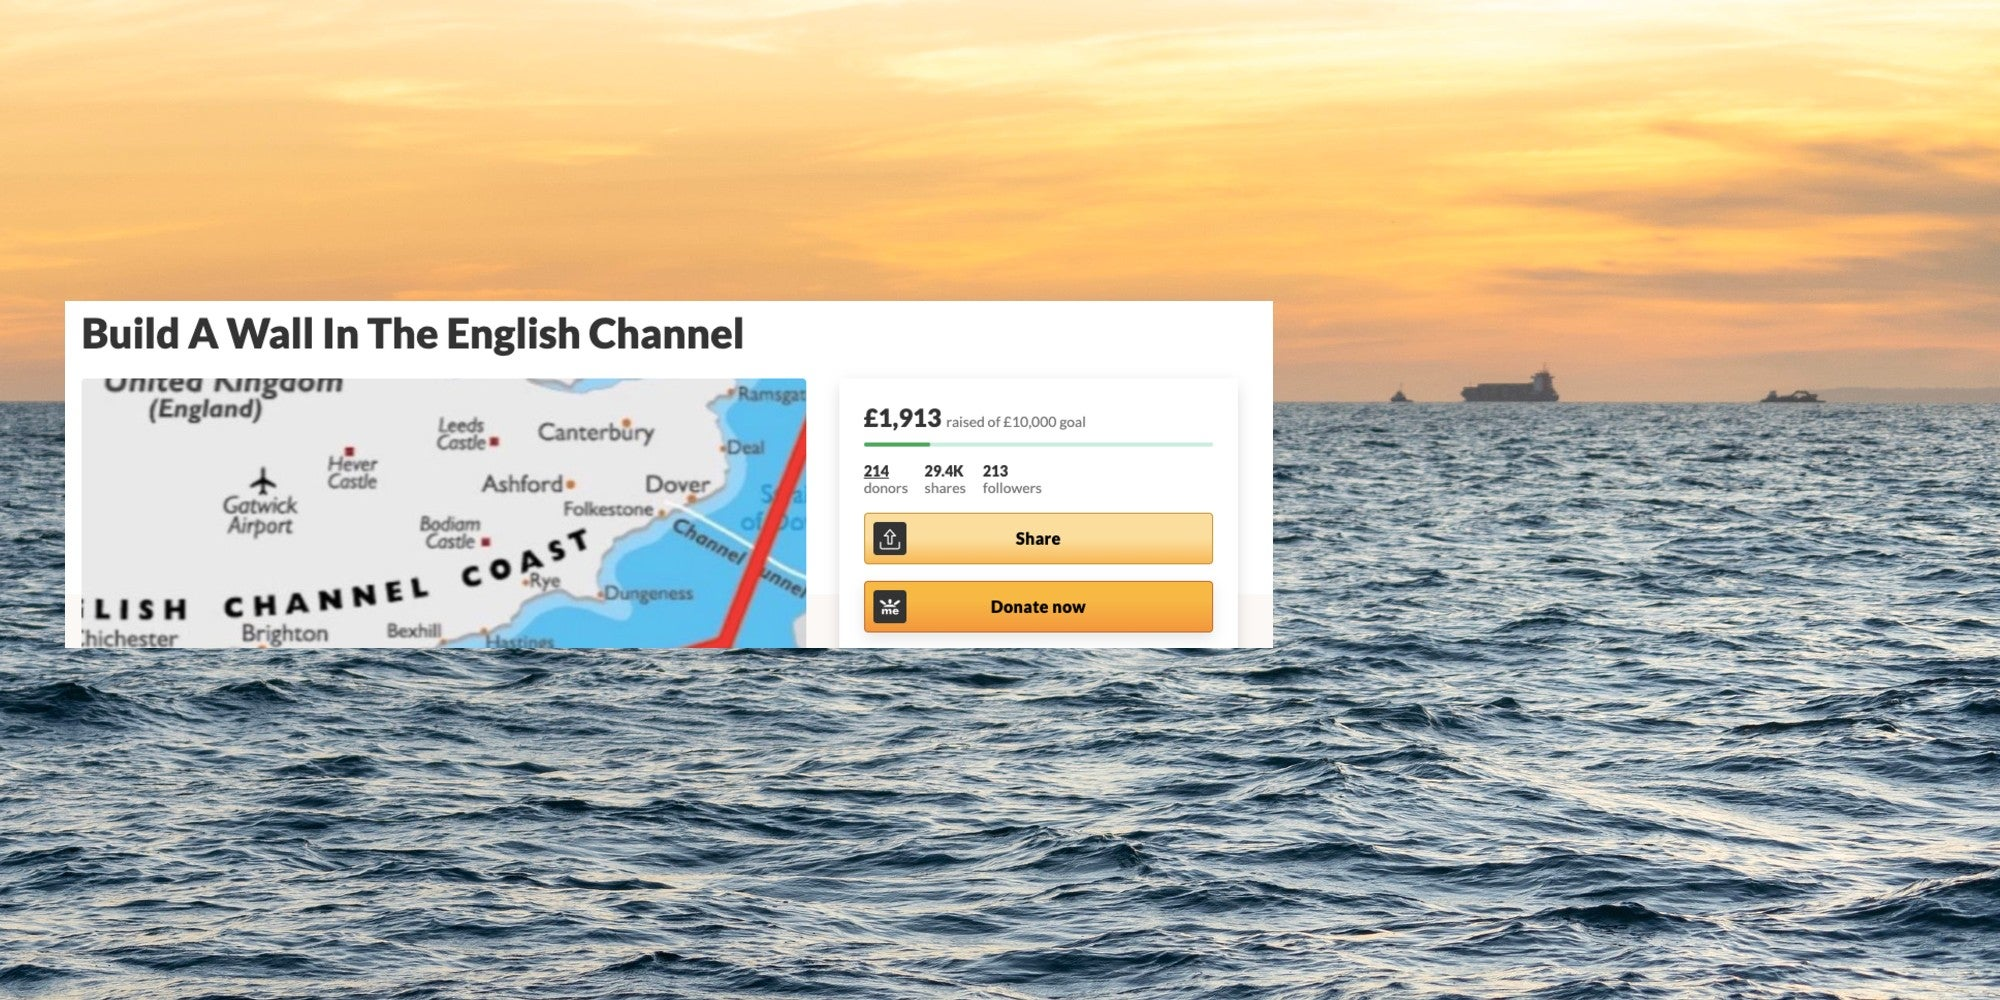 People are donating money to build a Trump-style 'wall in the English channel' - but there's a big twist